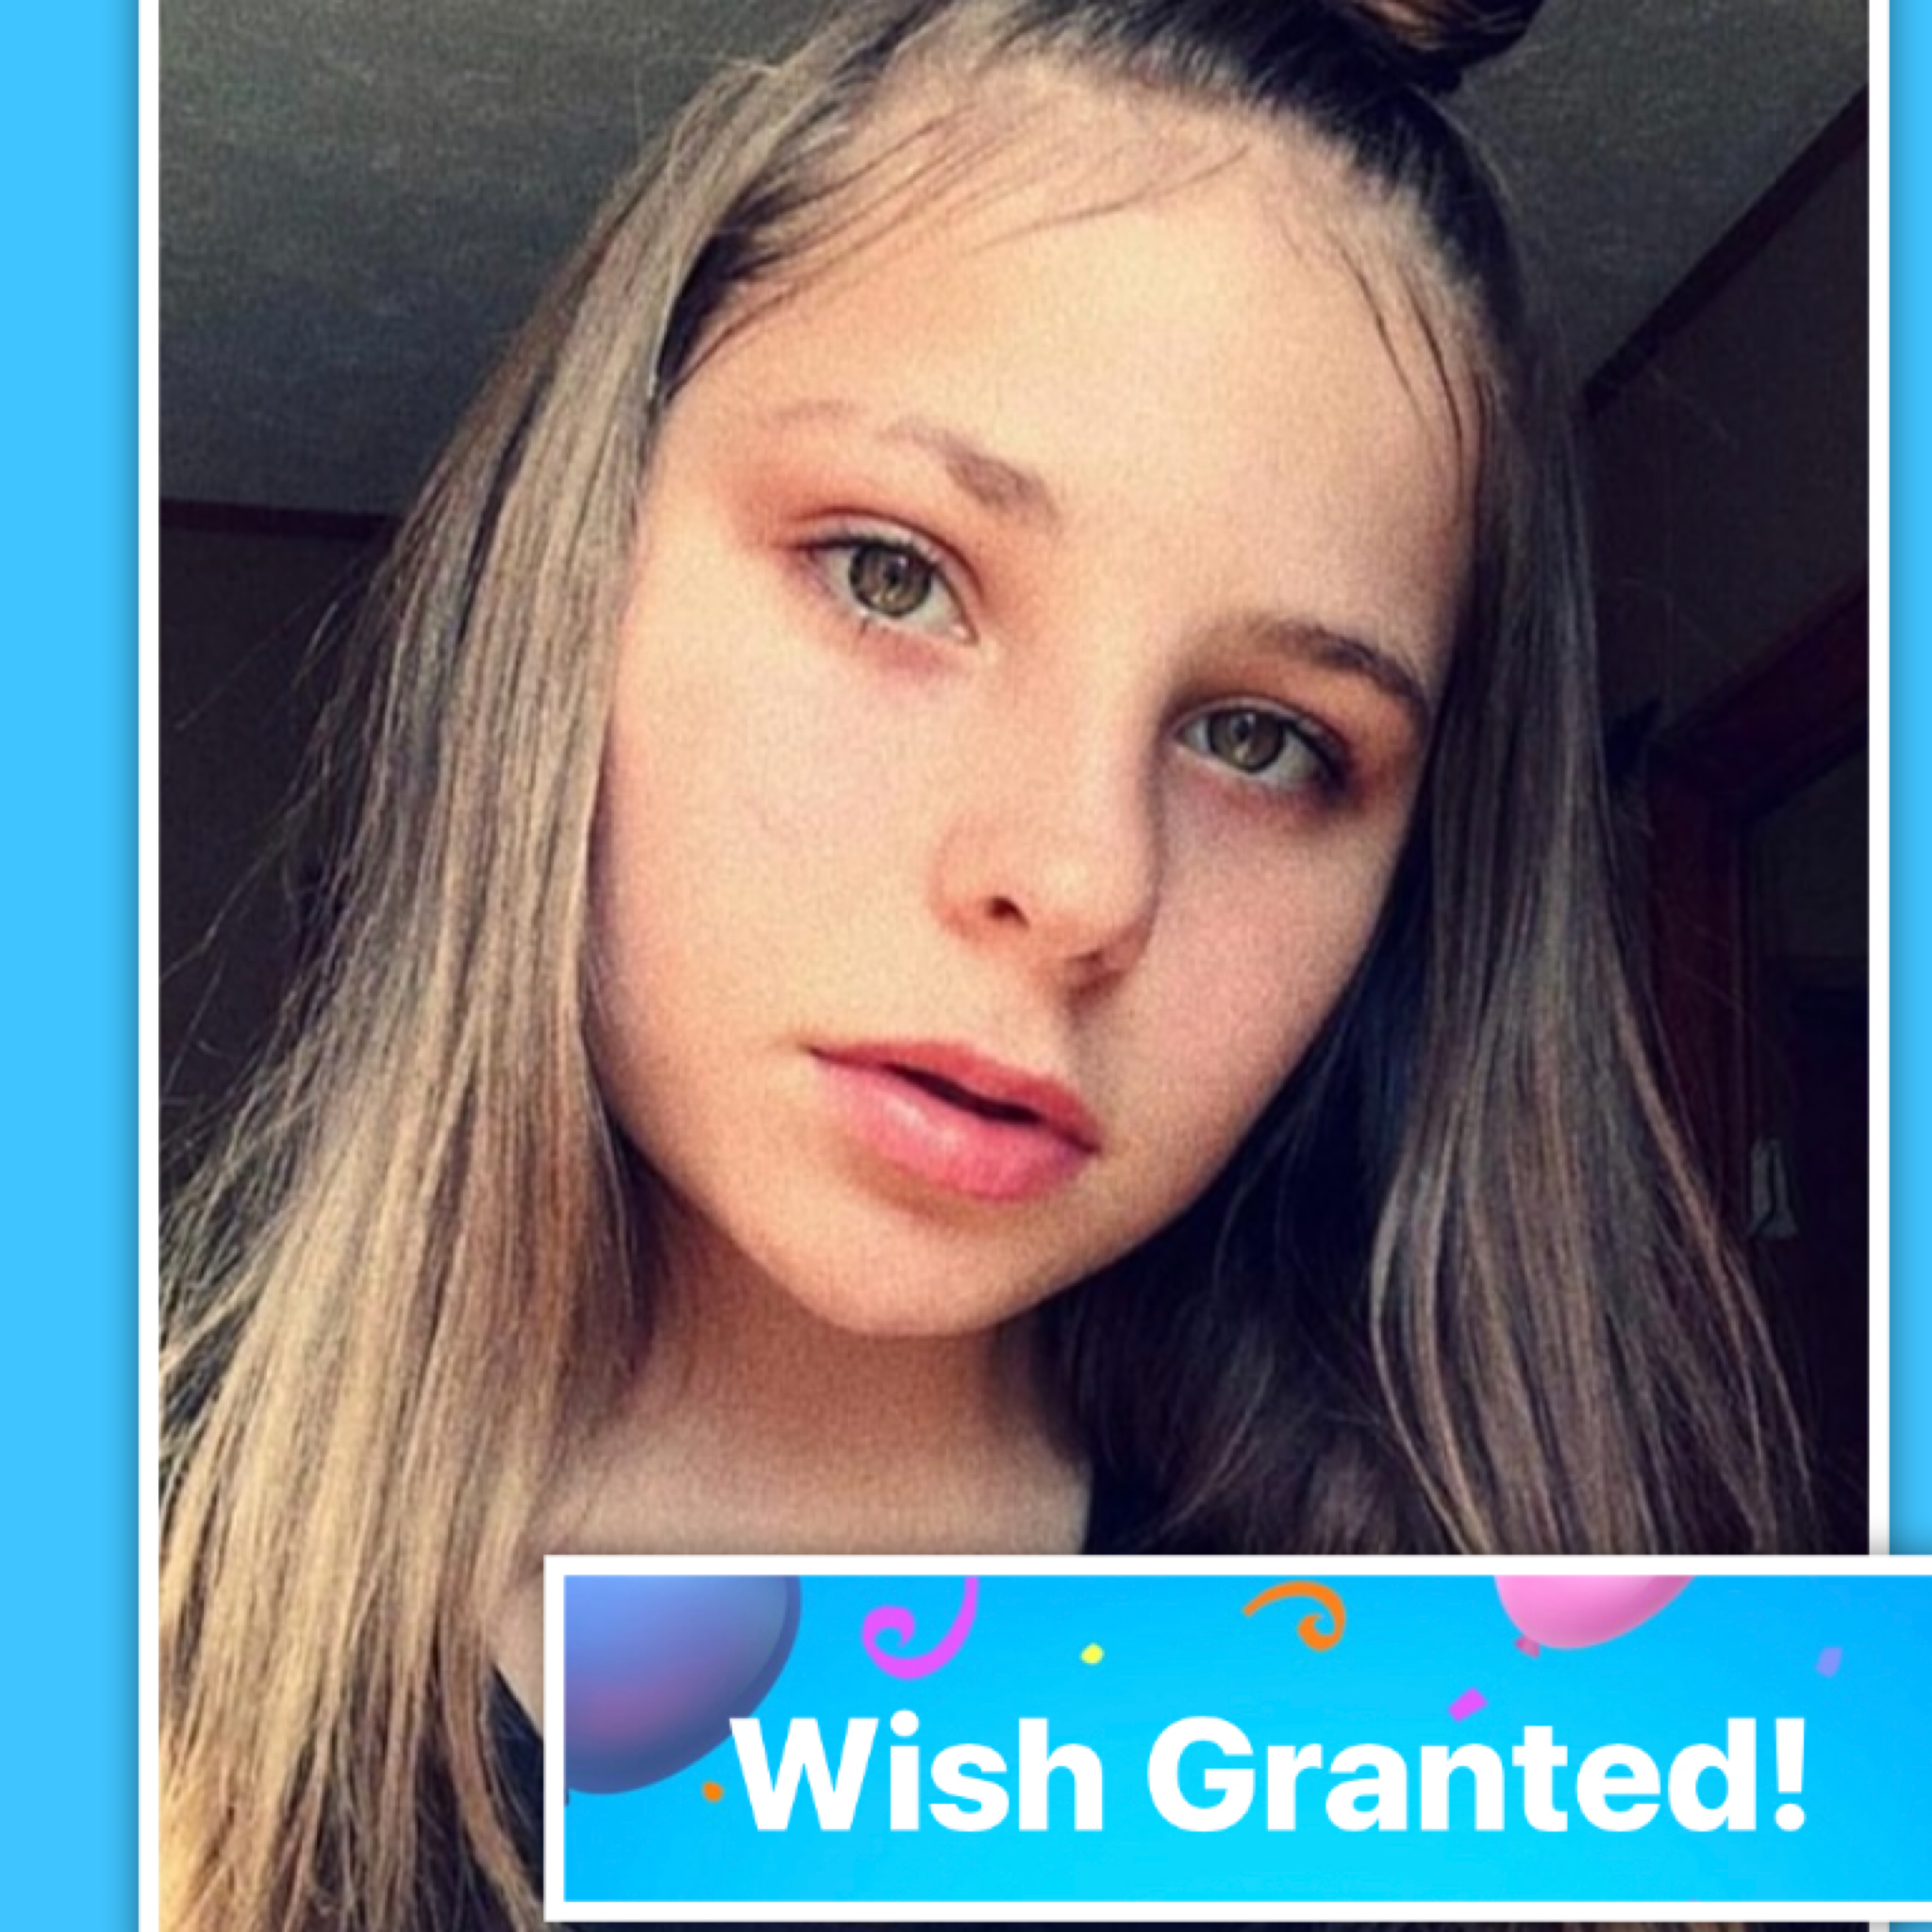 WISH GRANTED for teen with Autism & VSD struggling with isolation. Meet Hannah.